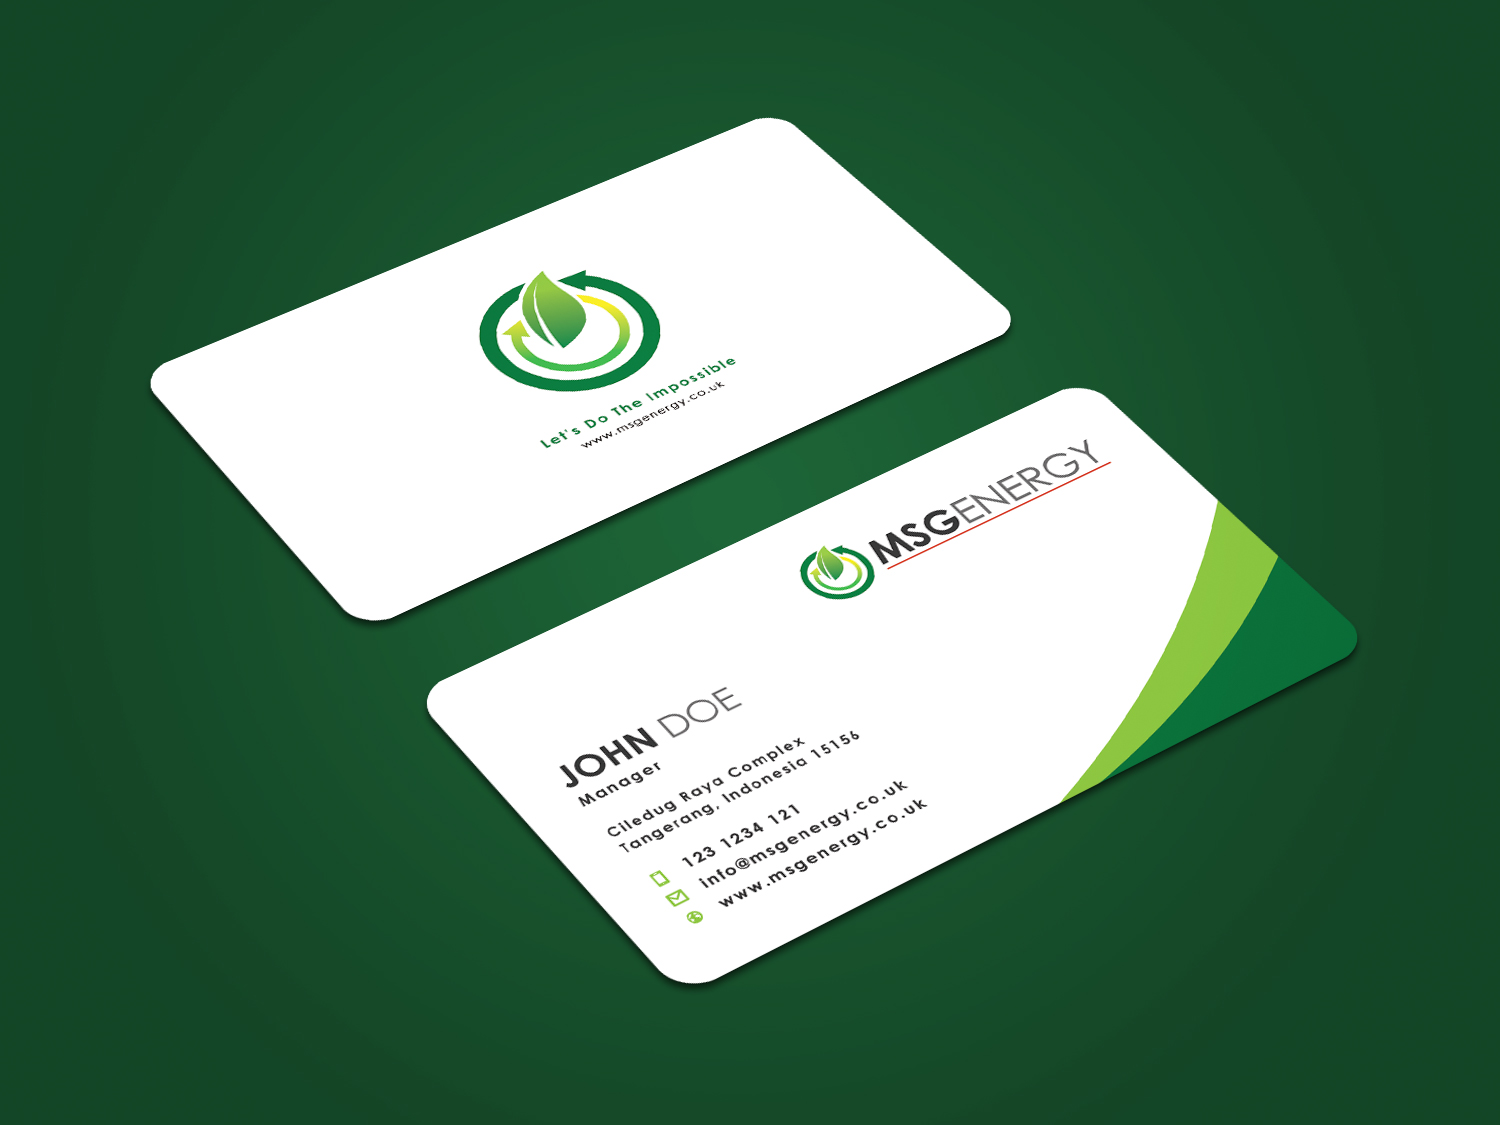 Modern upmarket solar energy business card design for a company by business card design by alvinfadoil for this project design 12127577 reheart Choice Image